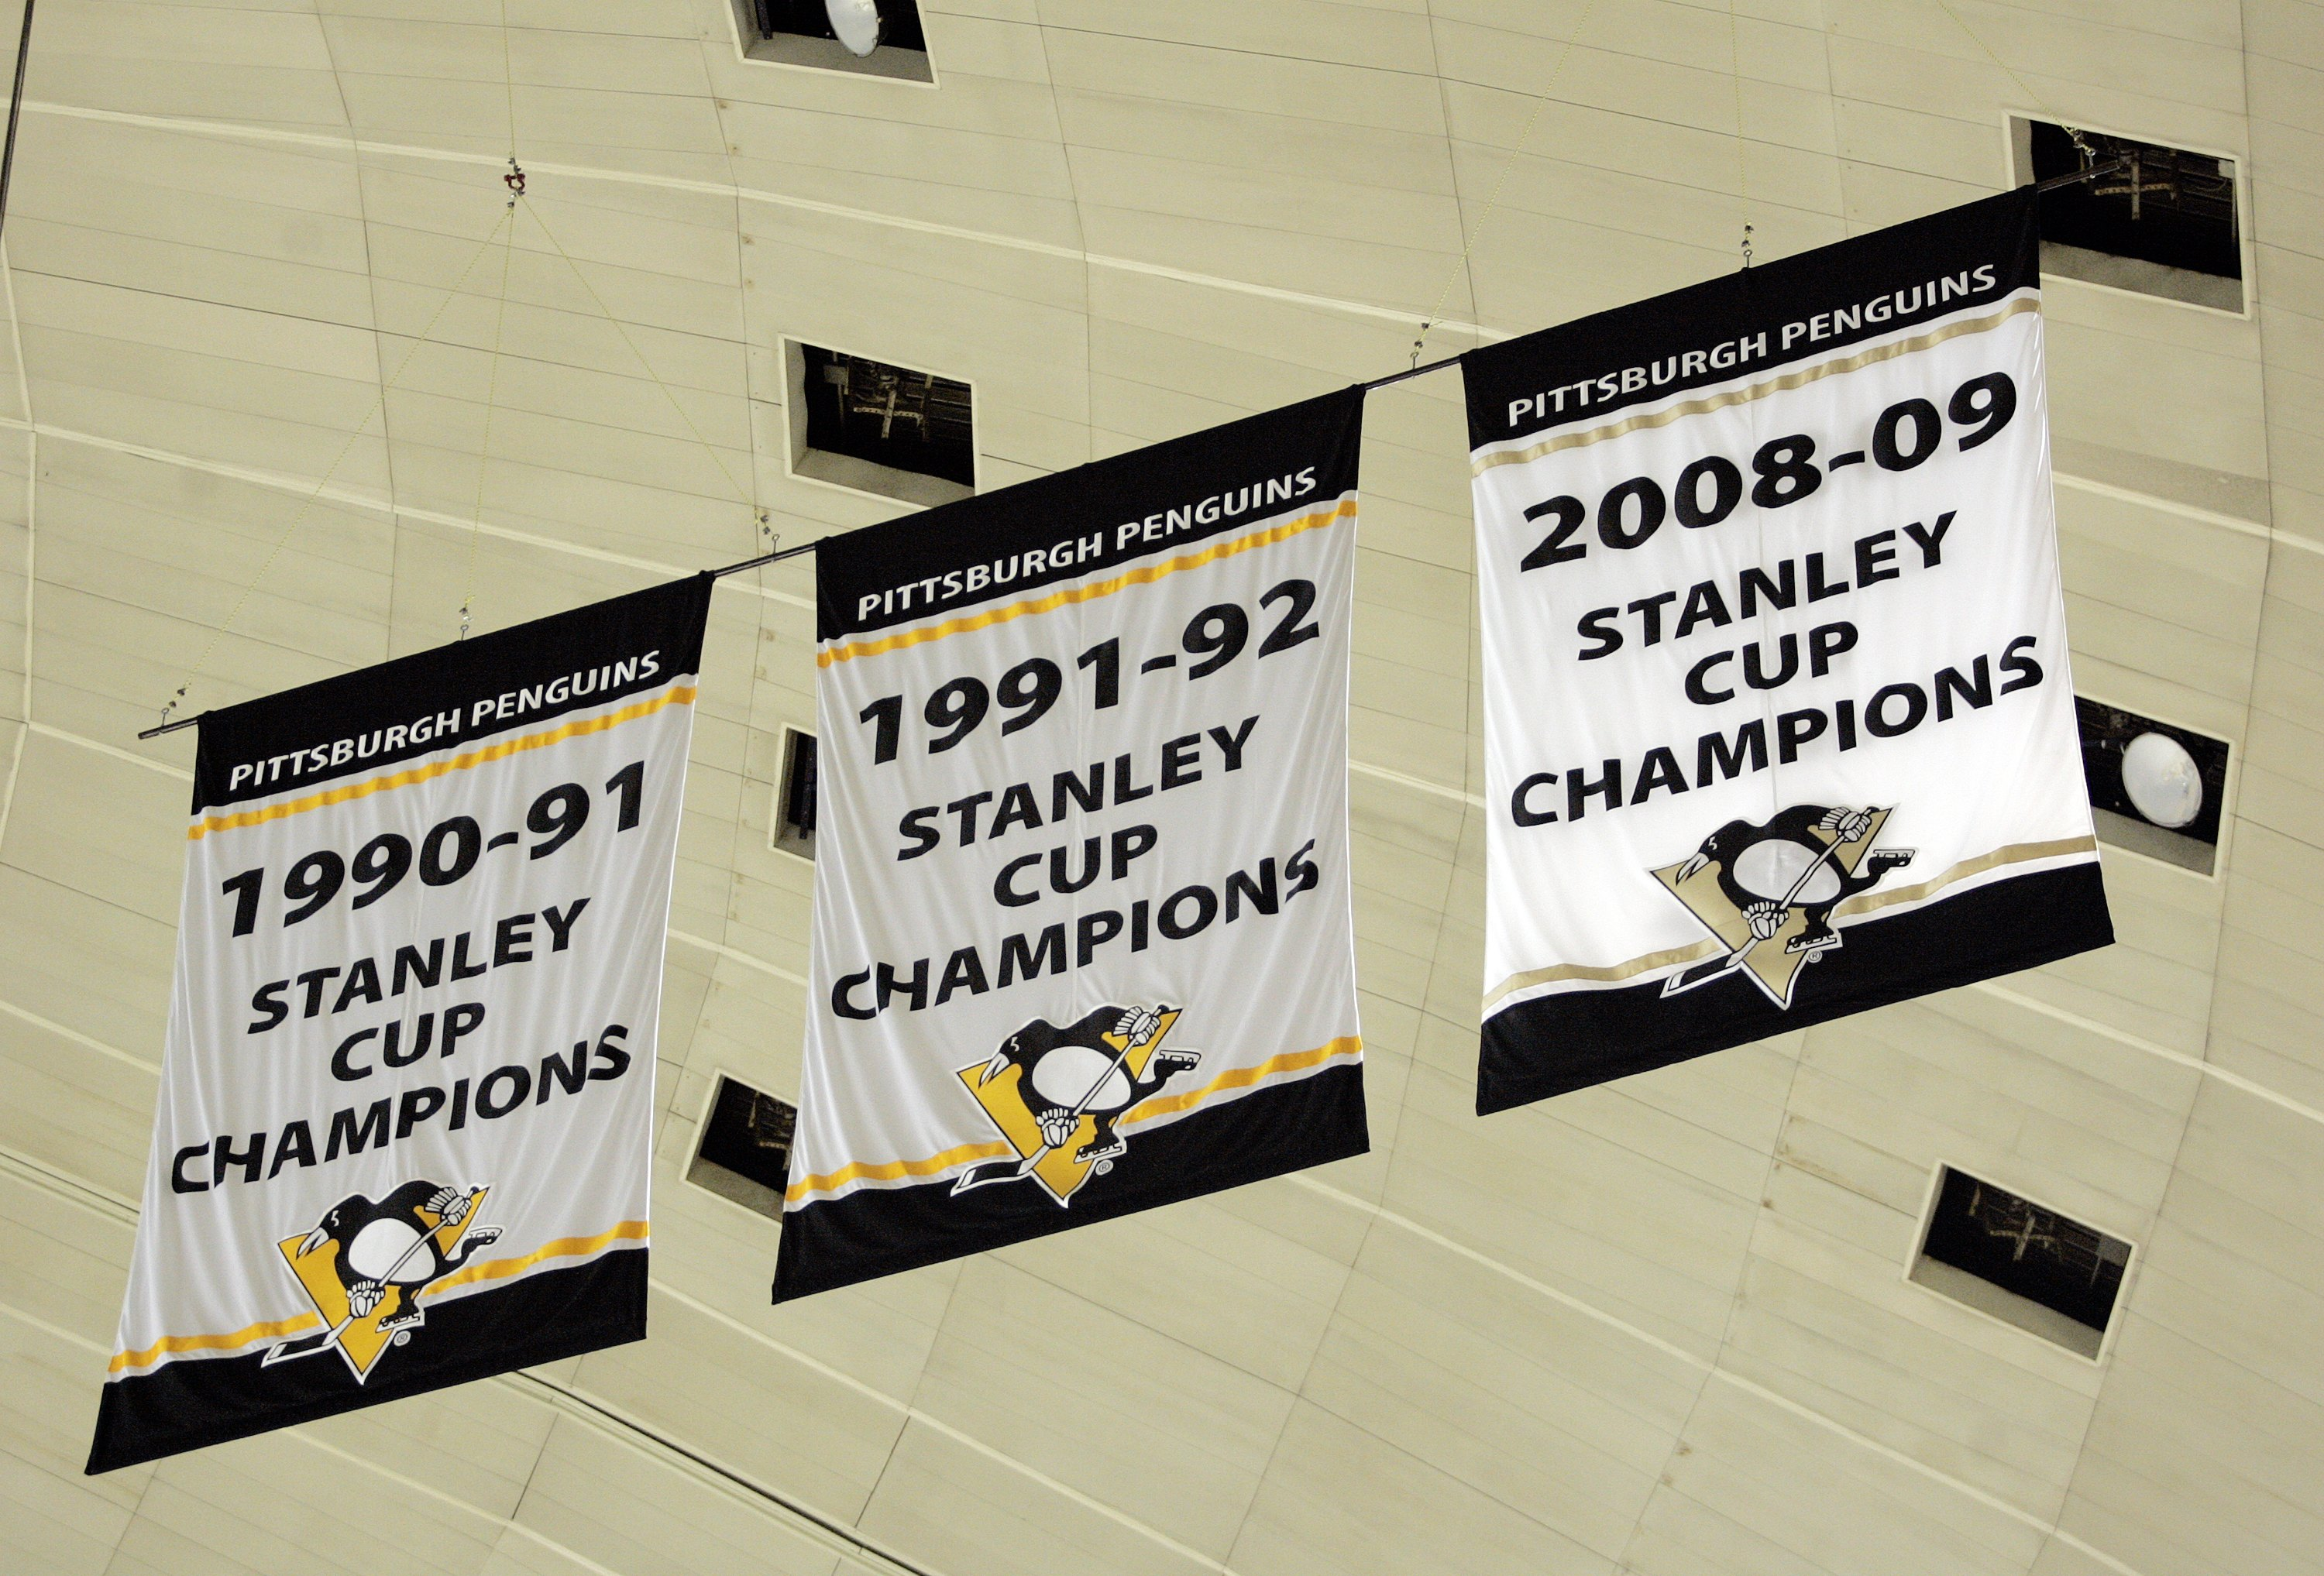 PITTSBURGH, PA - OCTOBER 07:  General View of the Stanley Cup Championship banners that hang at Mellon Arena on October 07, 2009 in Pittsburgh, Pennsylvania.  (Photo by Justin K. Aller/Getty Images)